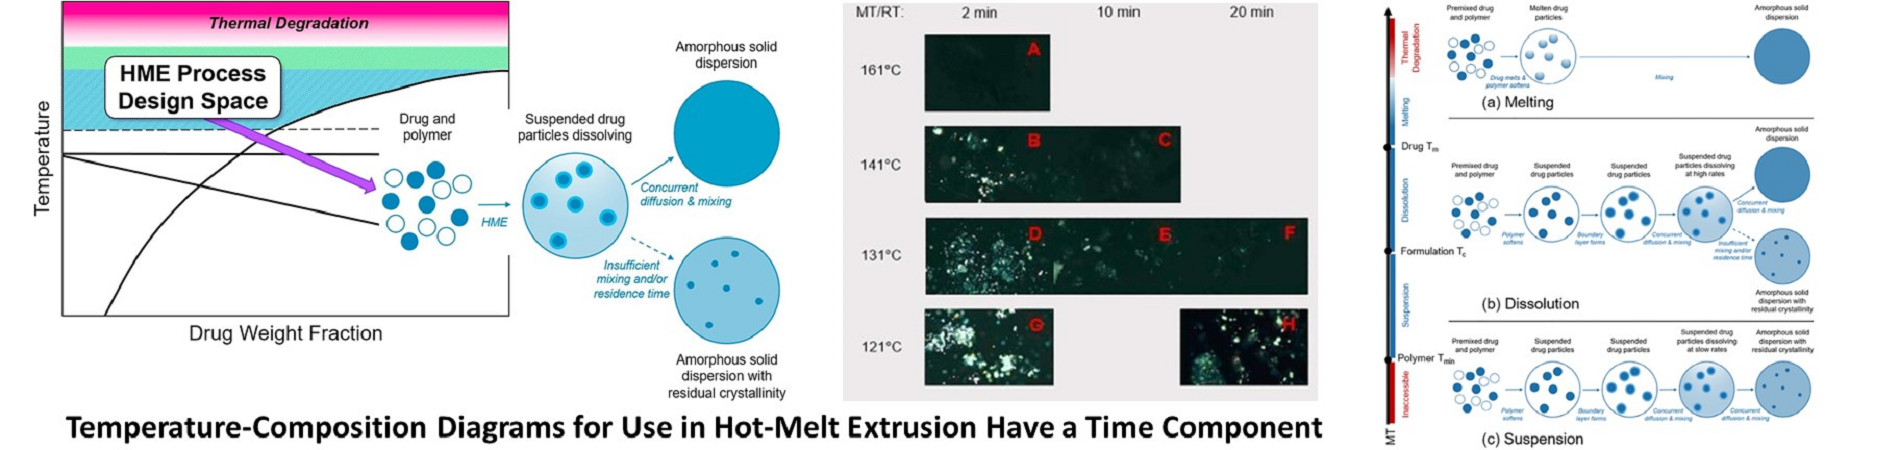 Temperature-composition diagrams for use in hot-melt extrusion have a time component